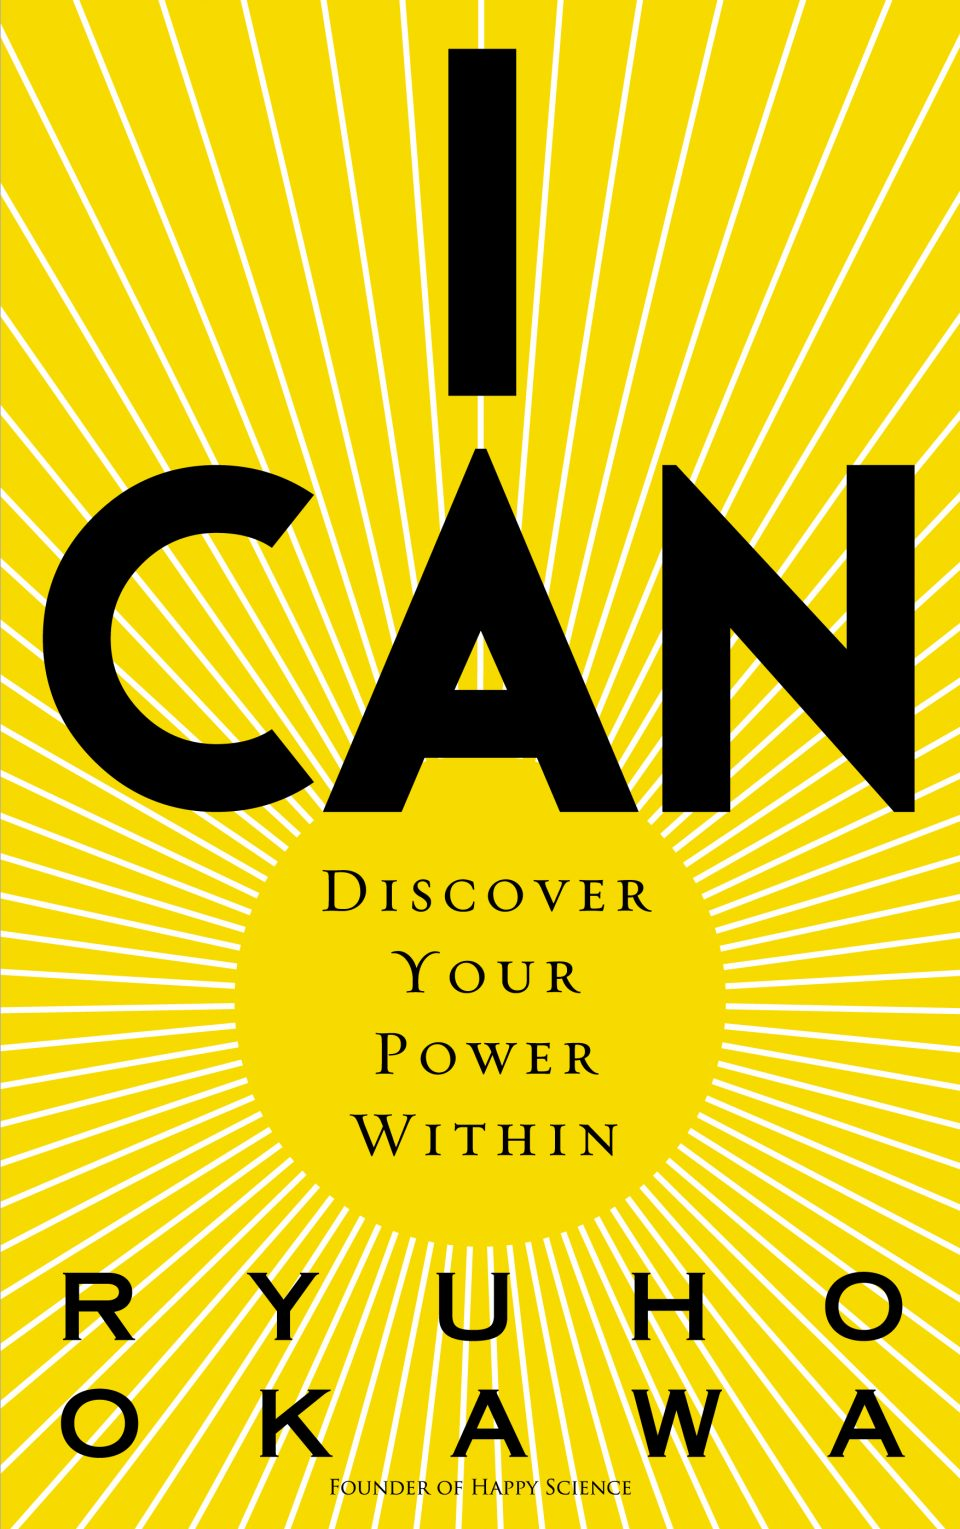 I Can: Discover Your Power Within is out now!